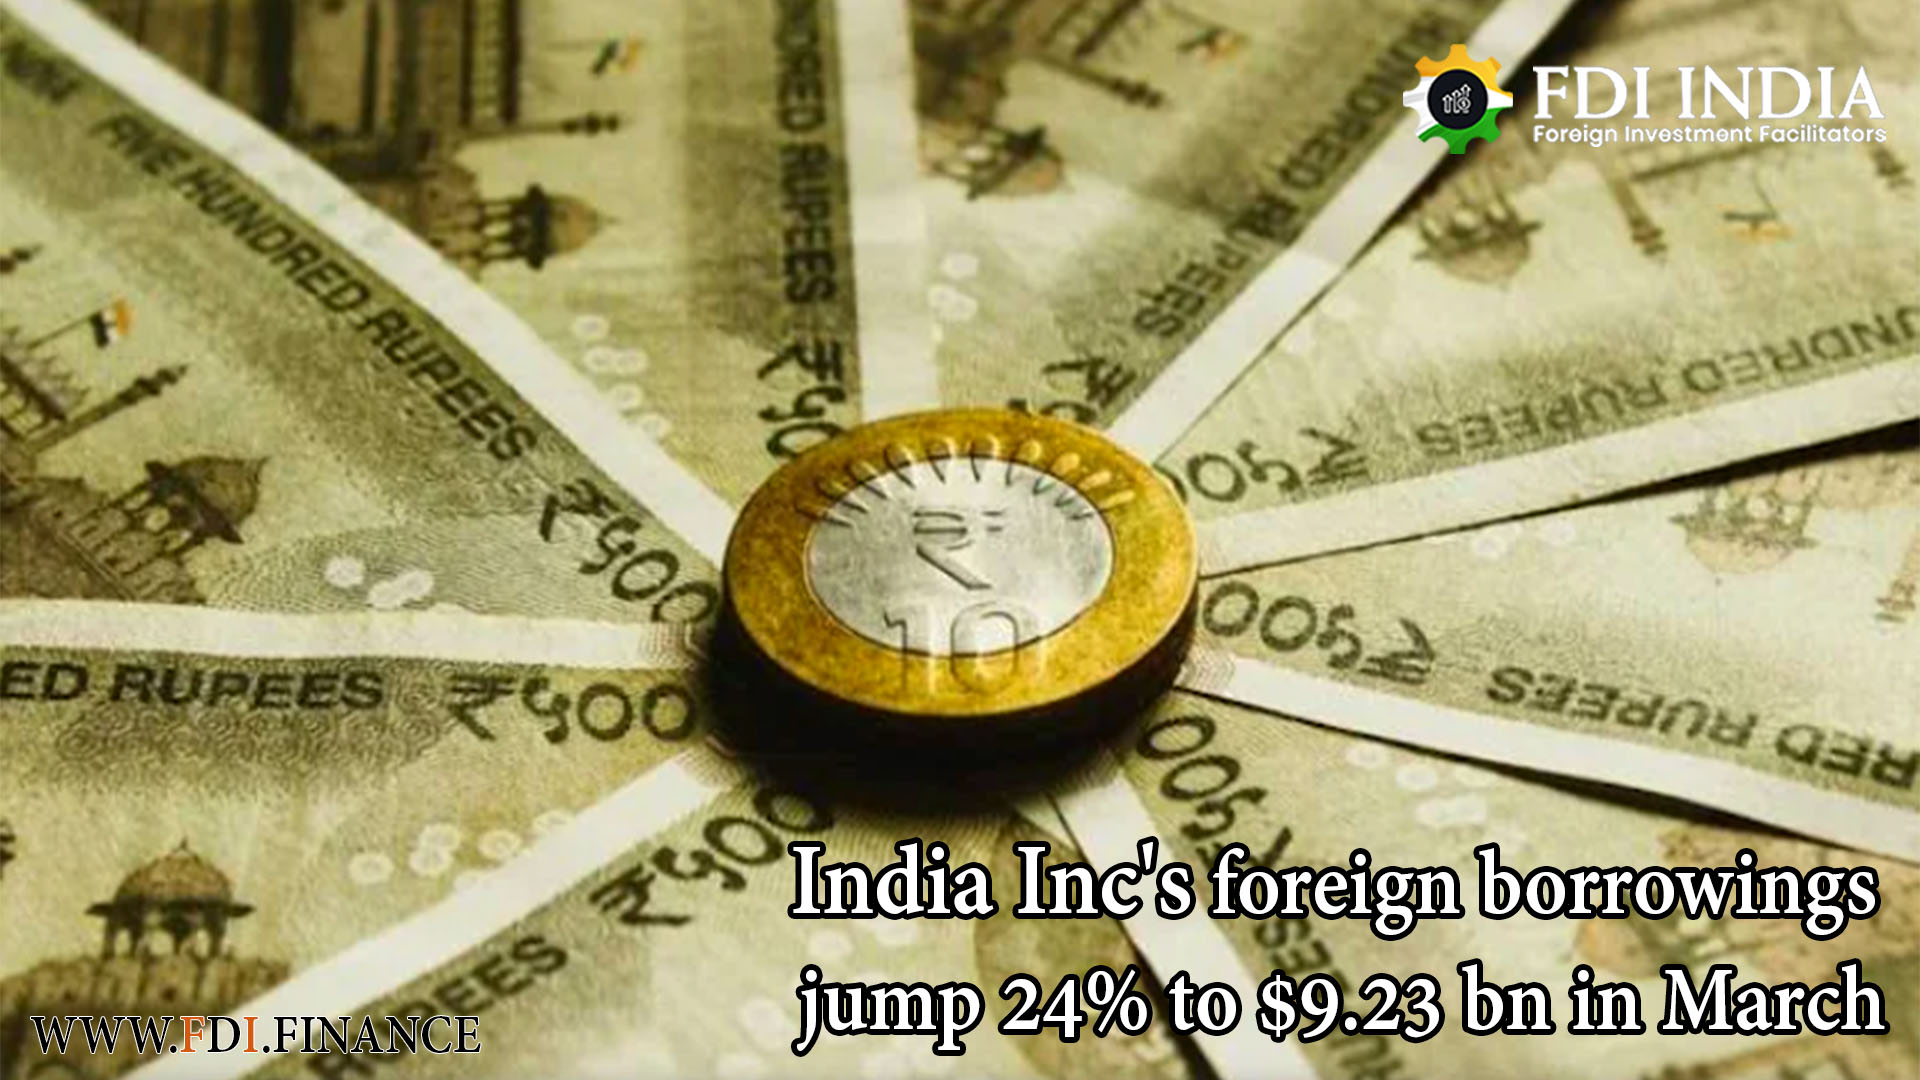 India Inc's foreign borrowings jump 24% to $9.23 bn in March